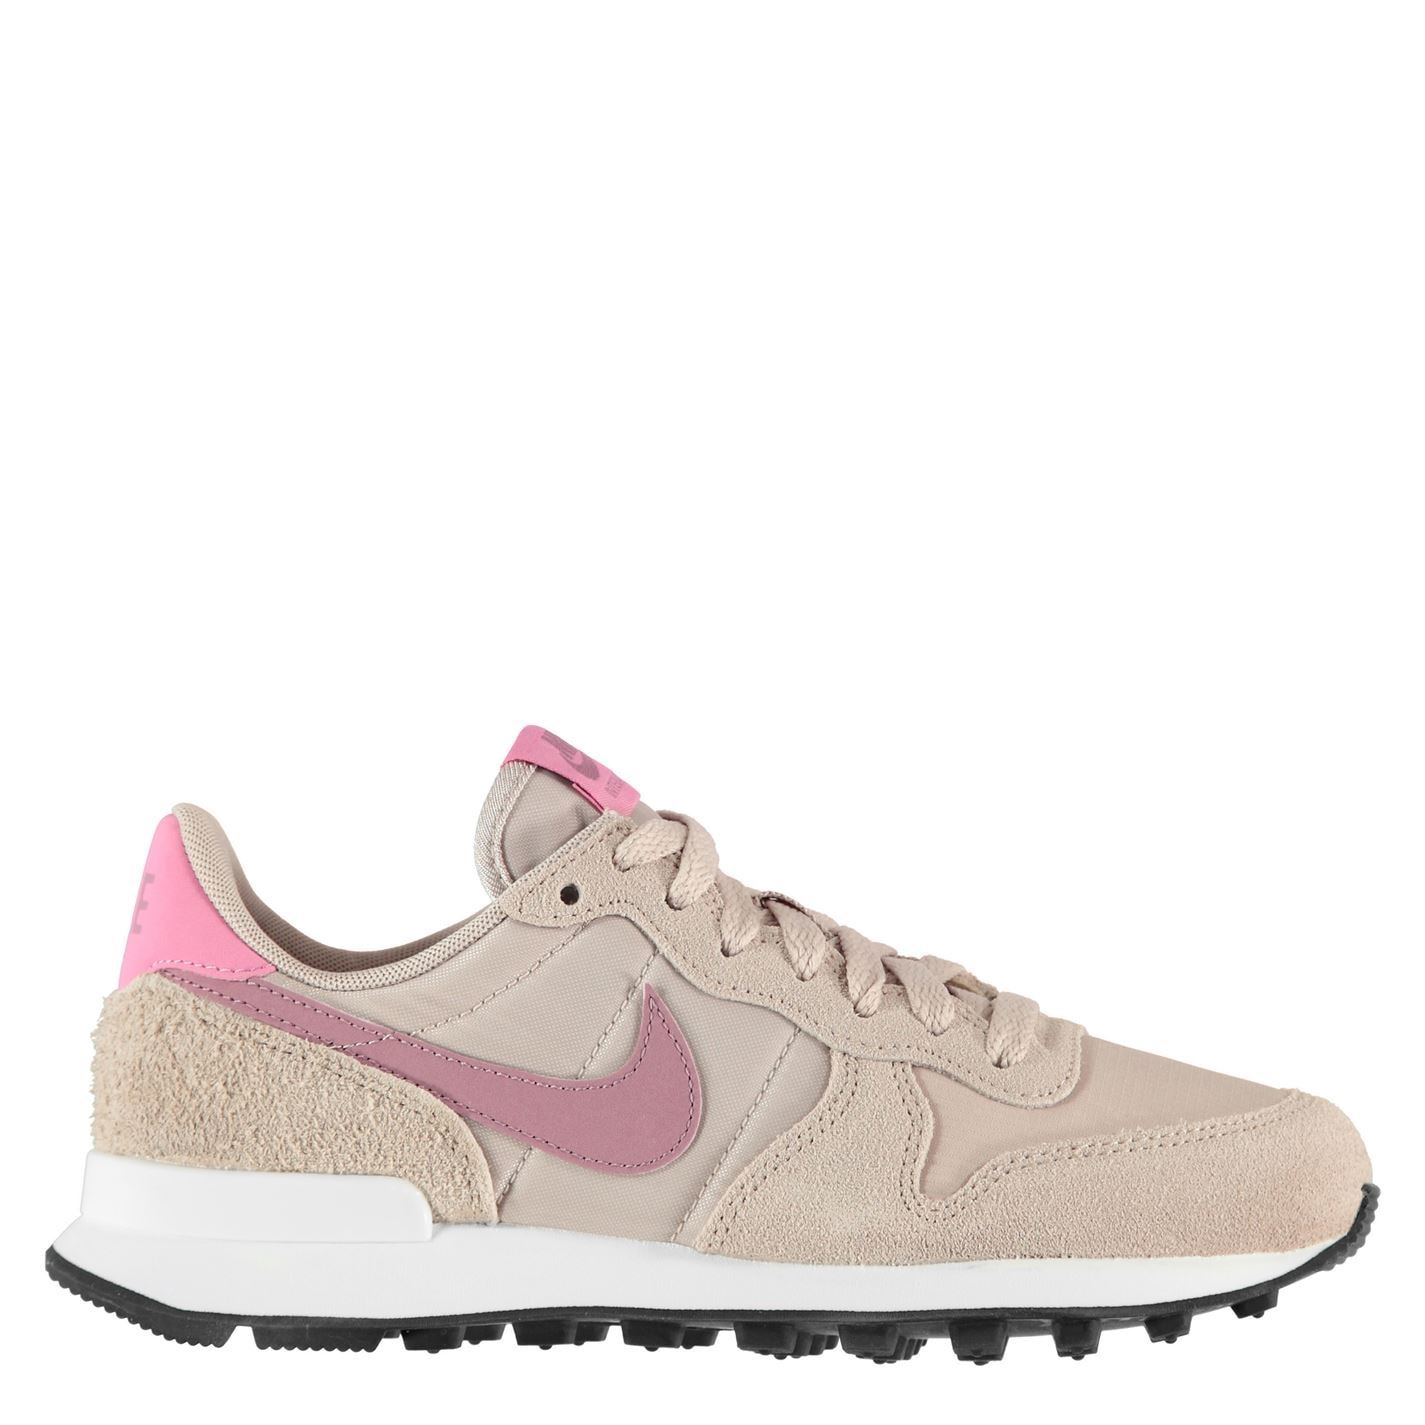 inundar Delgado aleación  Nike Internationalist Womens Running Trainers Beige Ladies Footwear Shoes |  eBay